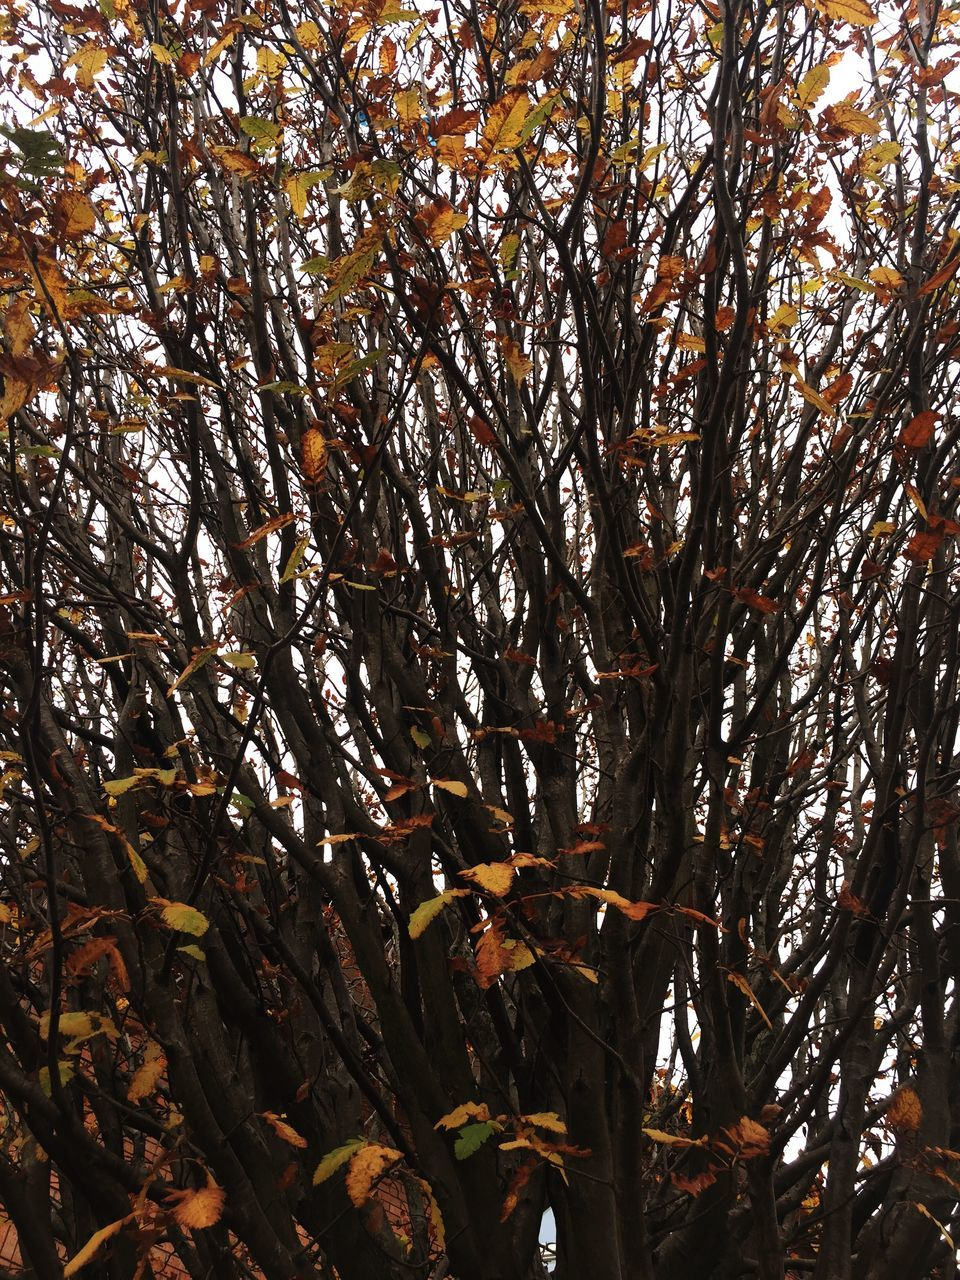 tree, branch, nature, beauty in nature, growth, autumn, leaf, low angle view, no people, outdoors, day, change, tranquility, fragility, flower, freshness, close-up, sky